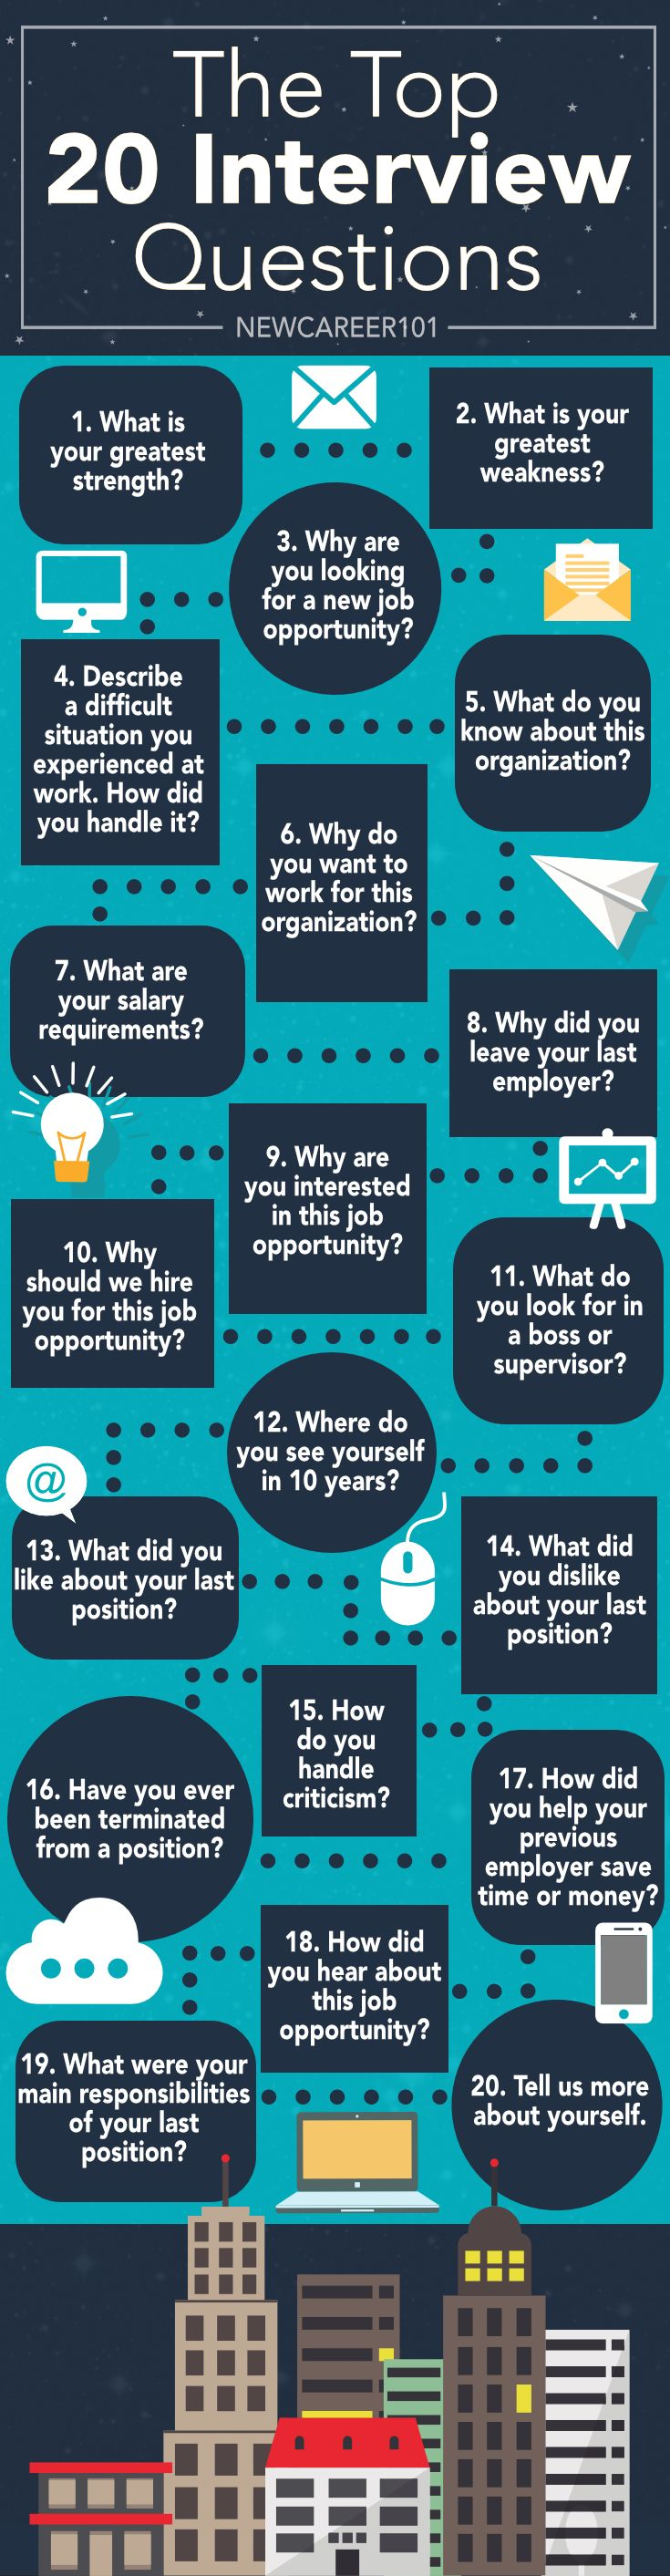 best ideas about interview questions to ask job newcareer101 com 8921 the interview is one top interview questions and answersmarketing manager